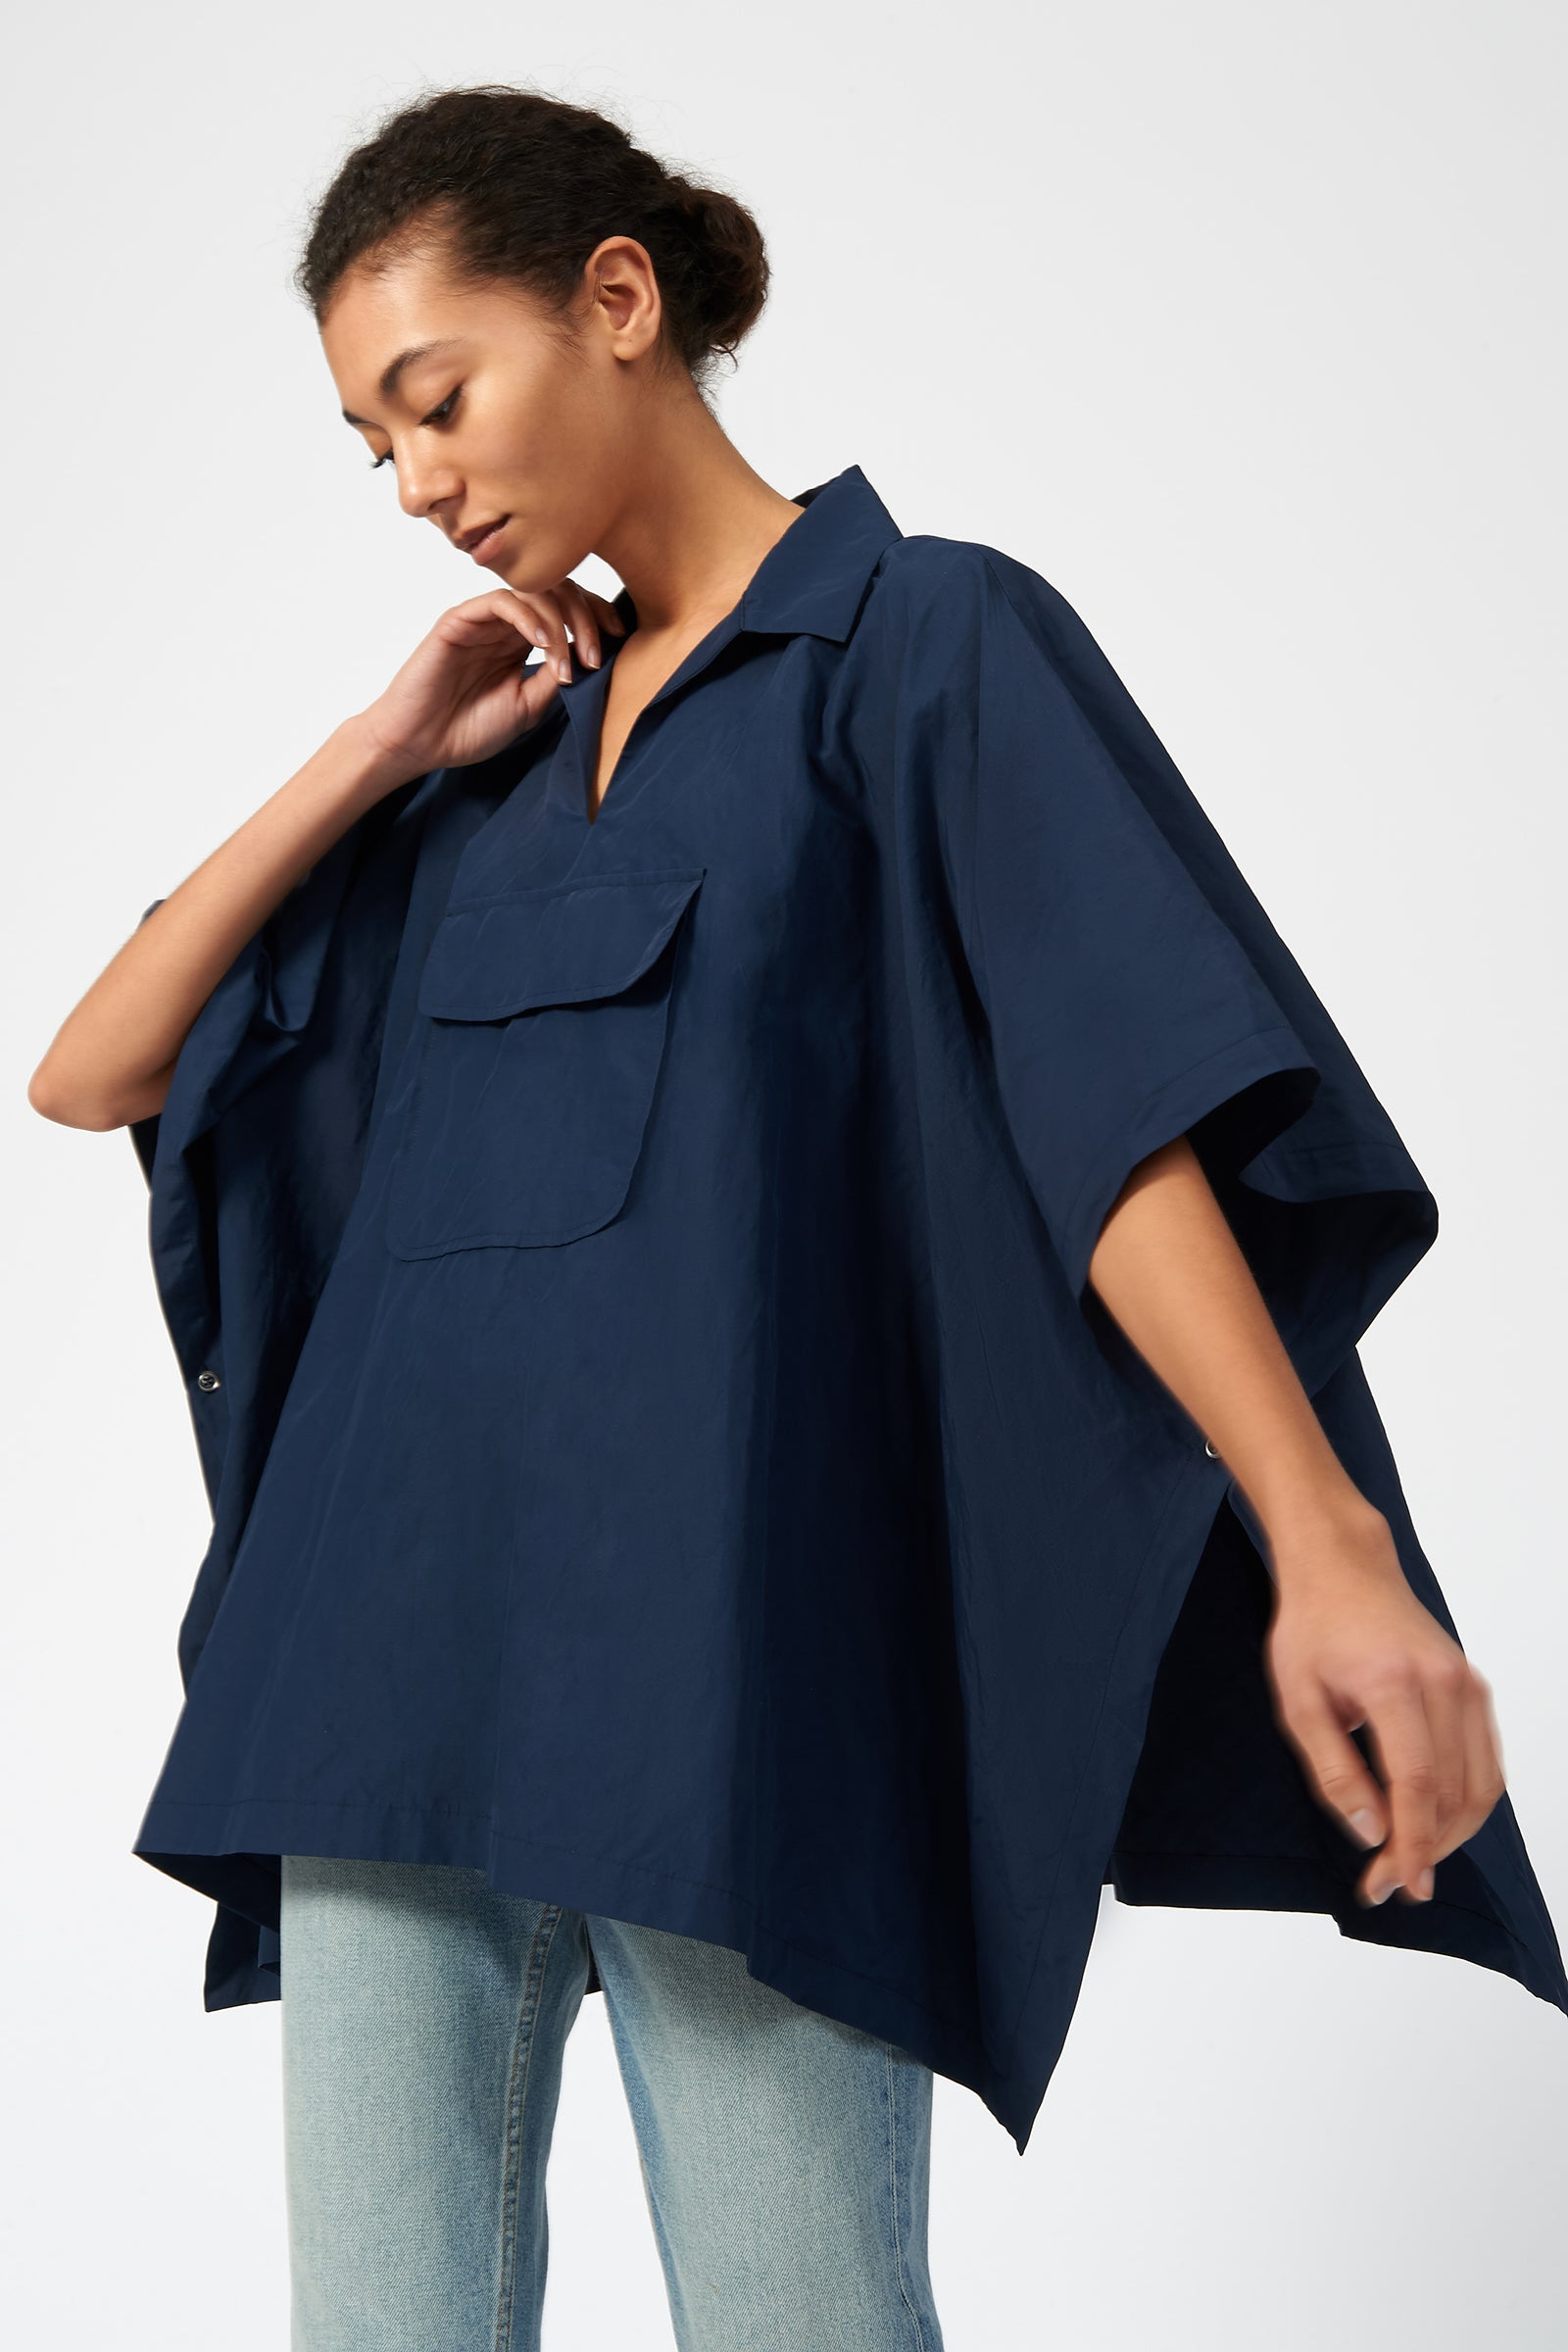 Kal Rieman Cotton Nylon Anorak in Navy on Model Front Side View